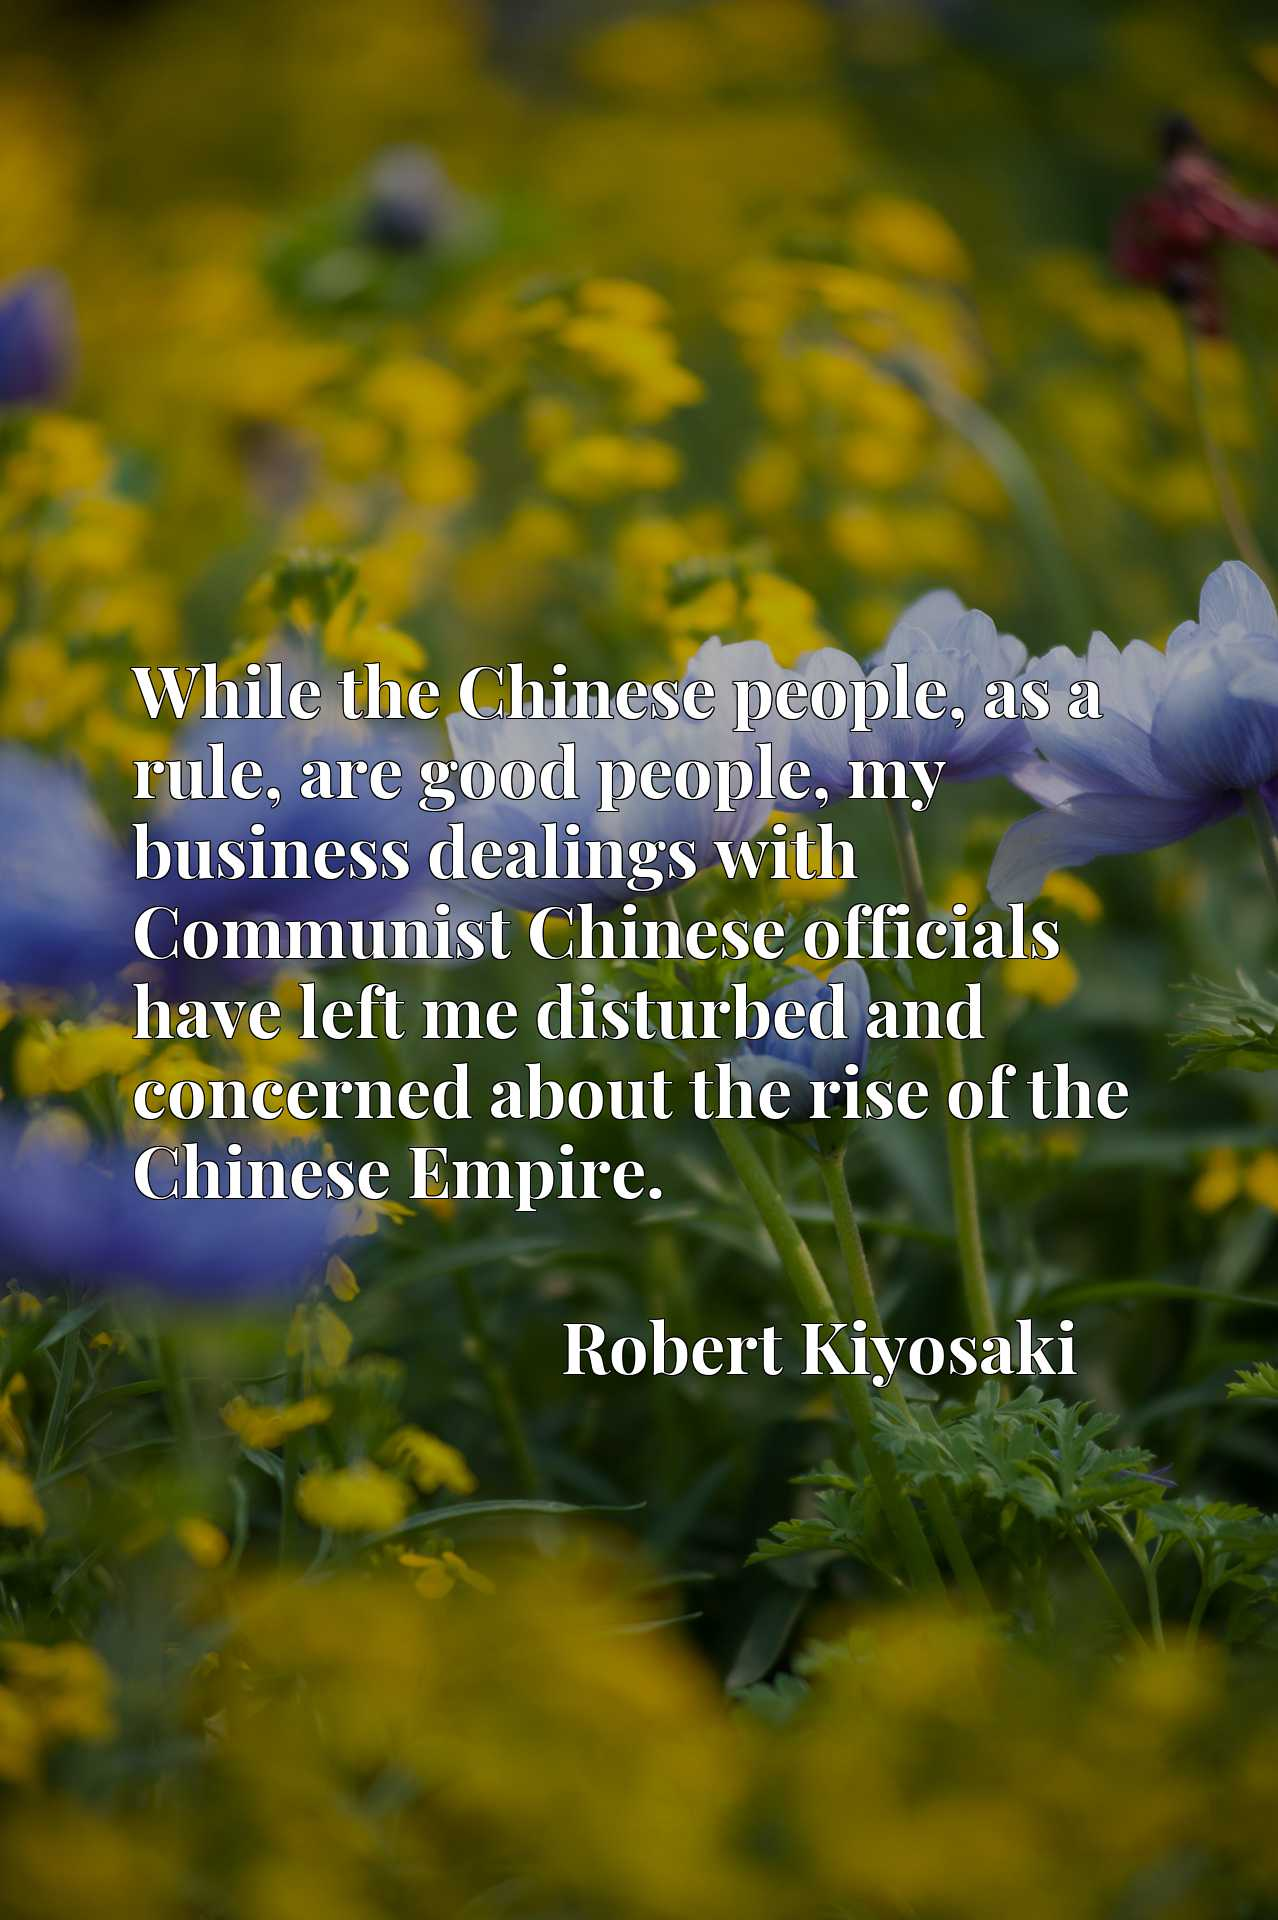 While the Chinese people, as a rule, are good people, my business dealings with Communist Chinese officials have left me disturbed and concerned about the rise of the Chinese Empire.